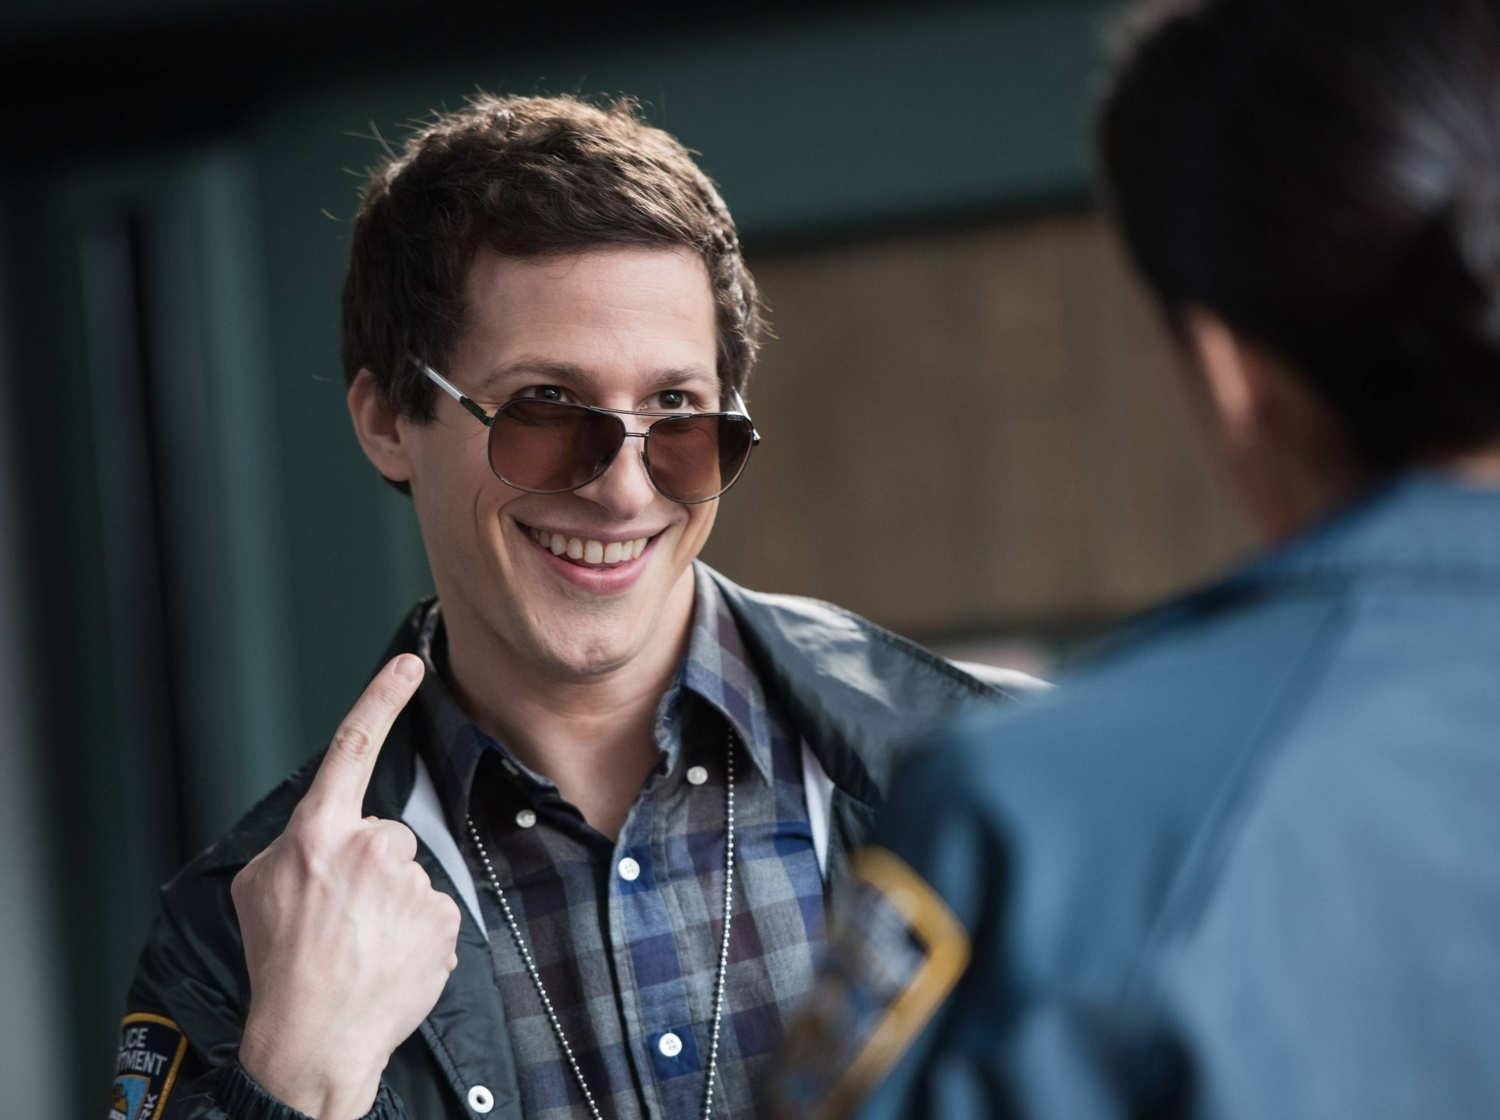 andy samberg lonely islandandy samberg justin timberlake, andy samberg height, andy samberg snl, andy samberg movie, andy samberg 2016, andy samberg gif, andy samberg imdb, andy samberg tumblr, andy samberg songs, andy samberg instagram, andy samberg lonely island, andy samberg music, andy samberg like a boss, andy samberg icons, andy samberg shy ronnie, andy samberg and chelsea peretti, andy samberg wallpaper, andy samberg eminem, andy samberg superstar, andy samberg wikipedia